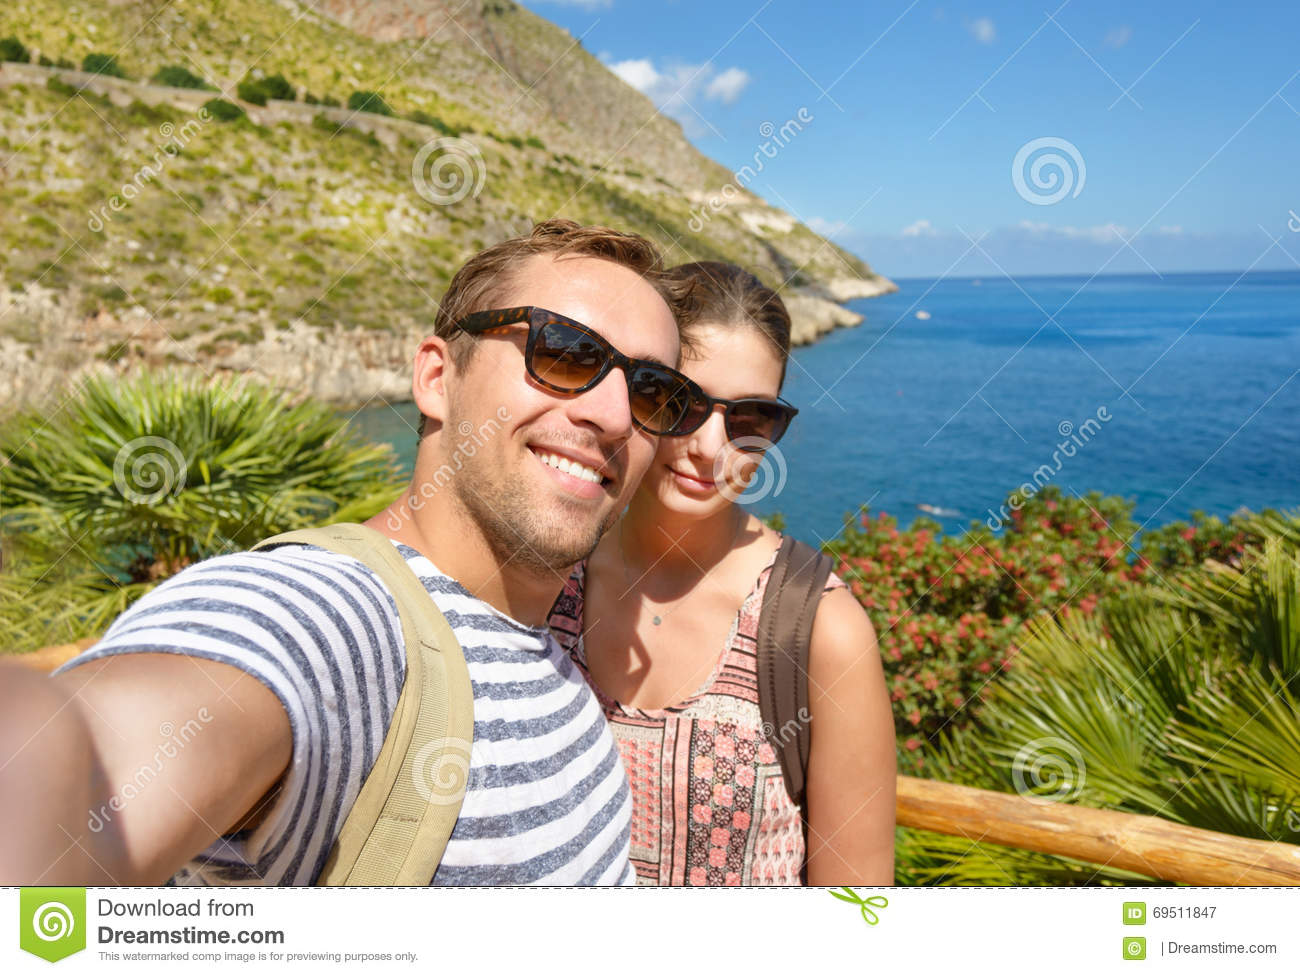 Young tourist take a selfie memory photo in tropical scenery during vacation around Italian coasts. Smiling couple.